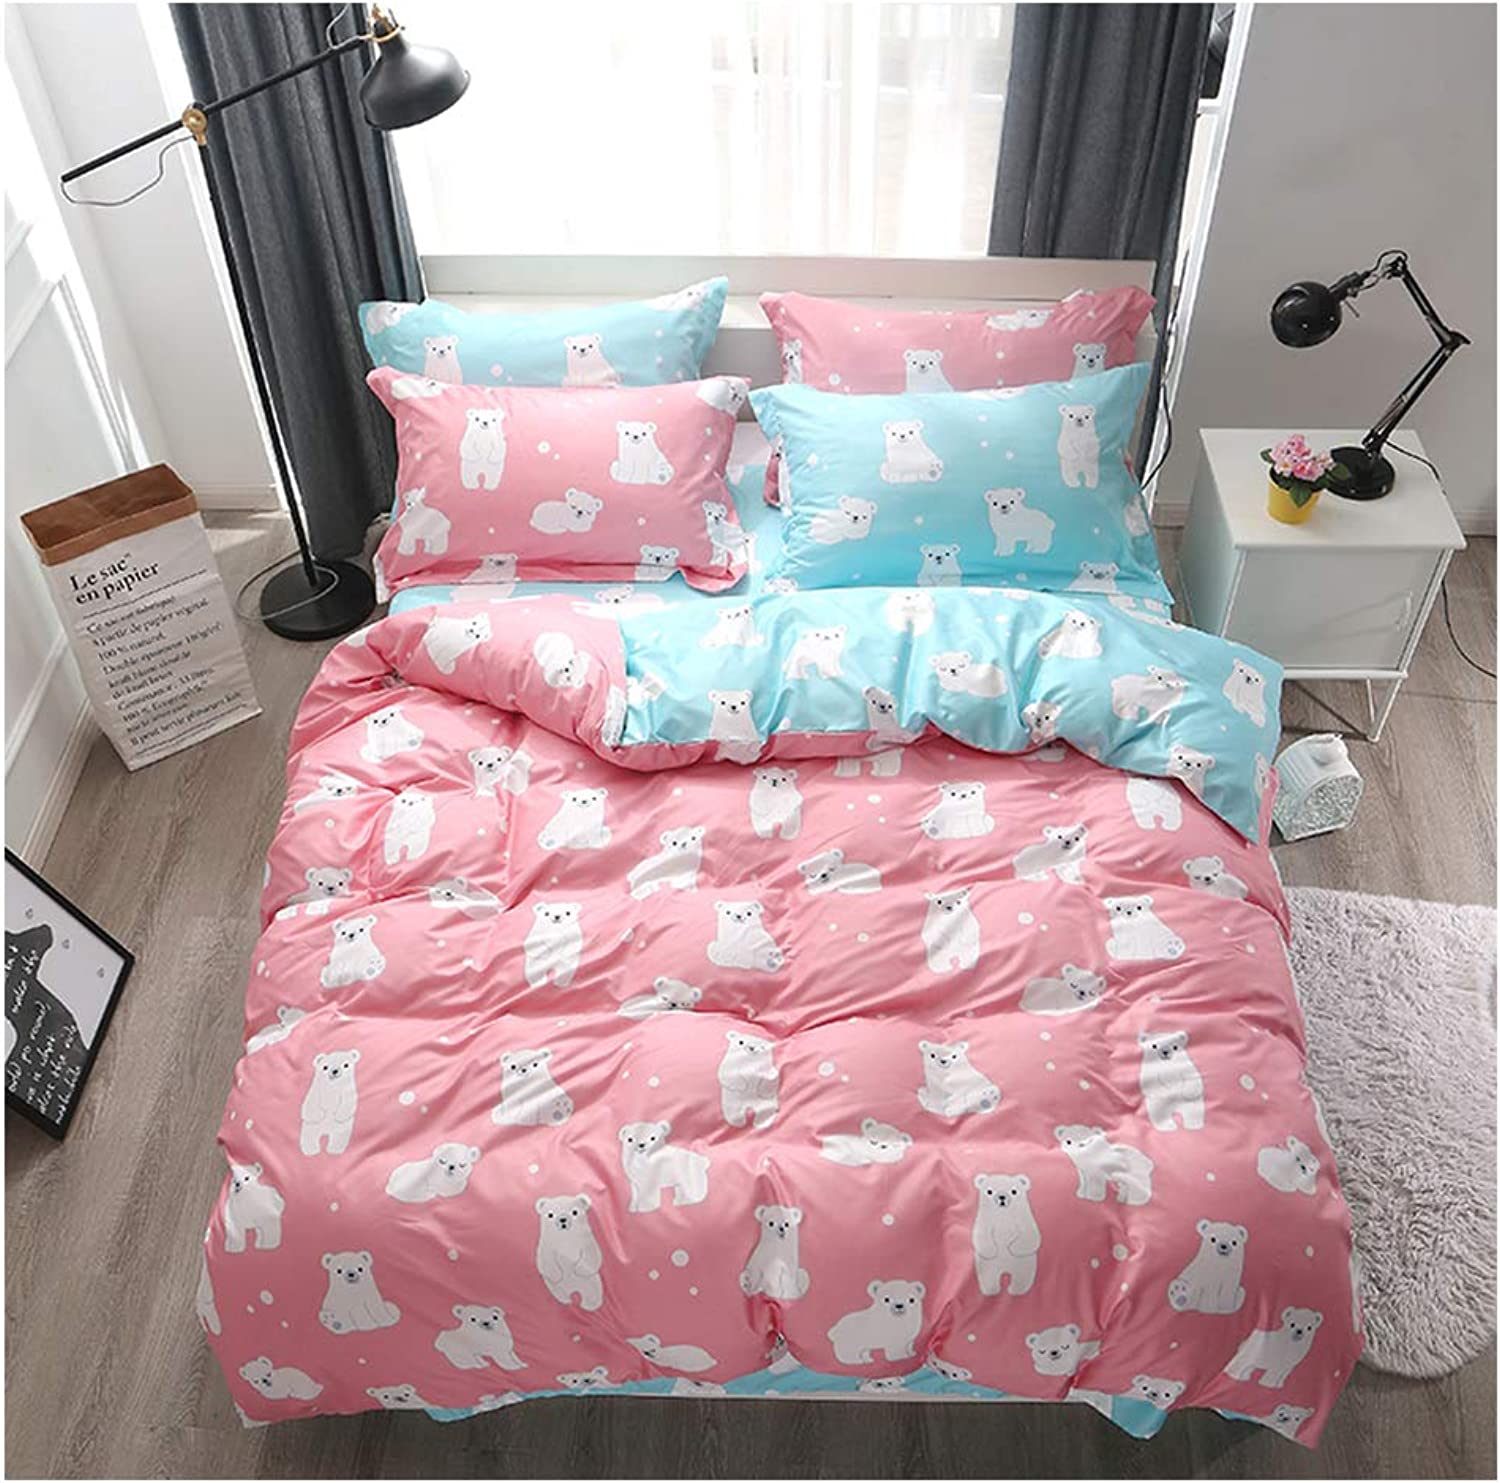 ORIHOME Bedding Set Twin Full Queen King Cute Little White bearprint- 4 Piece Bedding Sets - Teen Bedding for Girls Bedroom(Without Quilts) AJ (Cute Bear,bluee+Pink, Full,71''x87'')